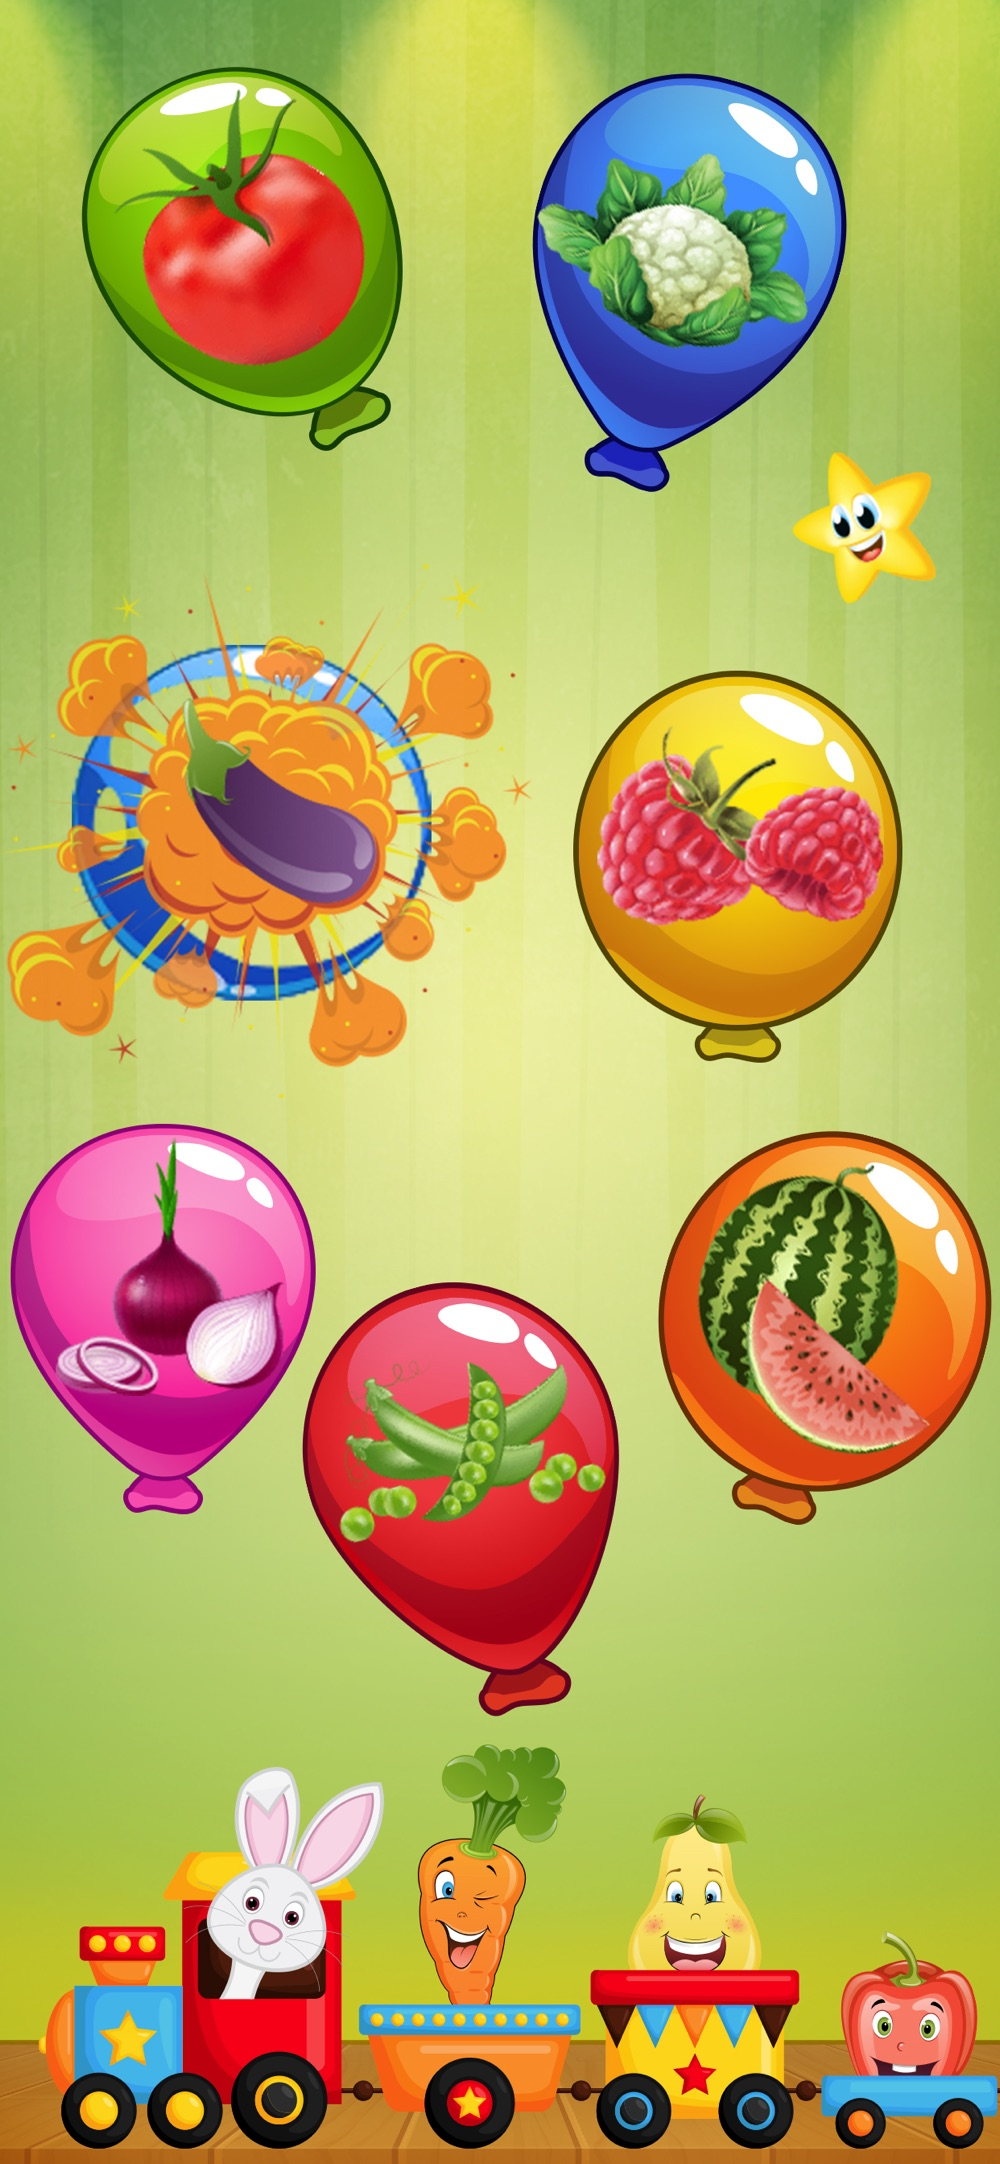 Balloon Pop games for kids hack tool